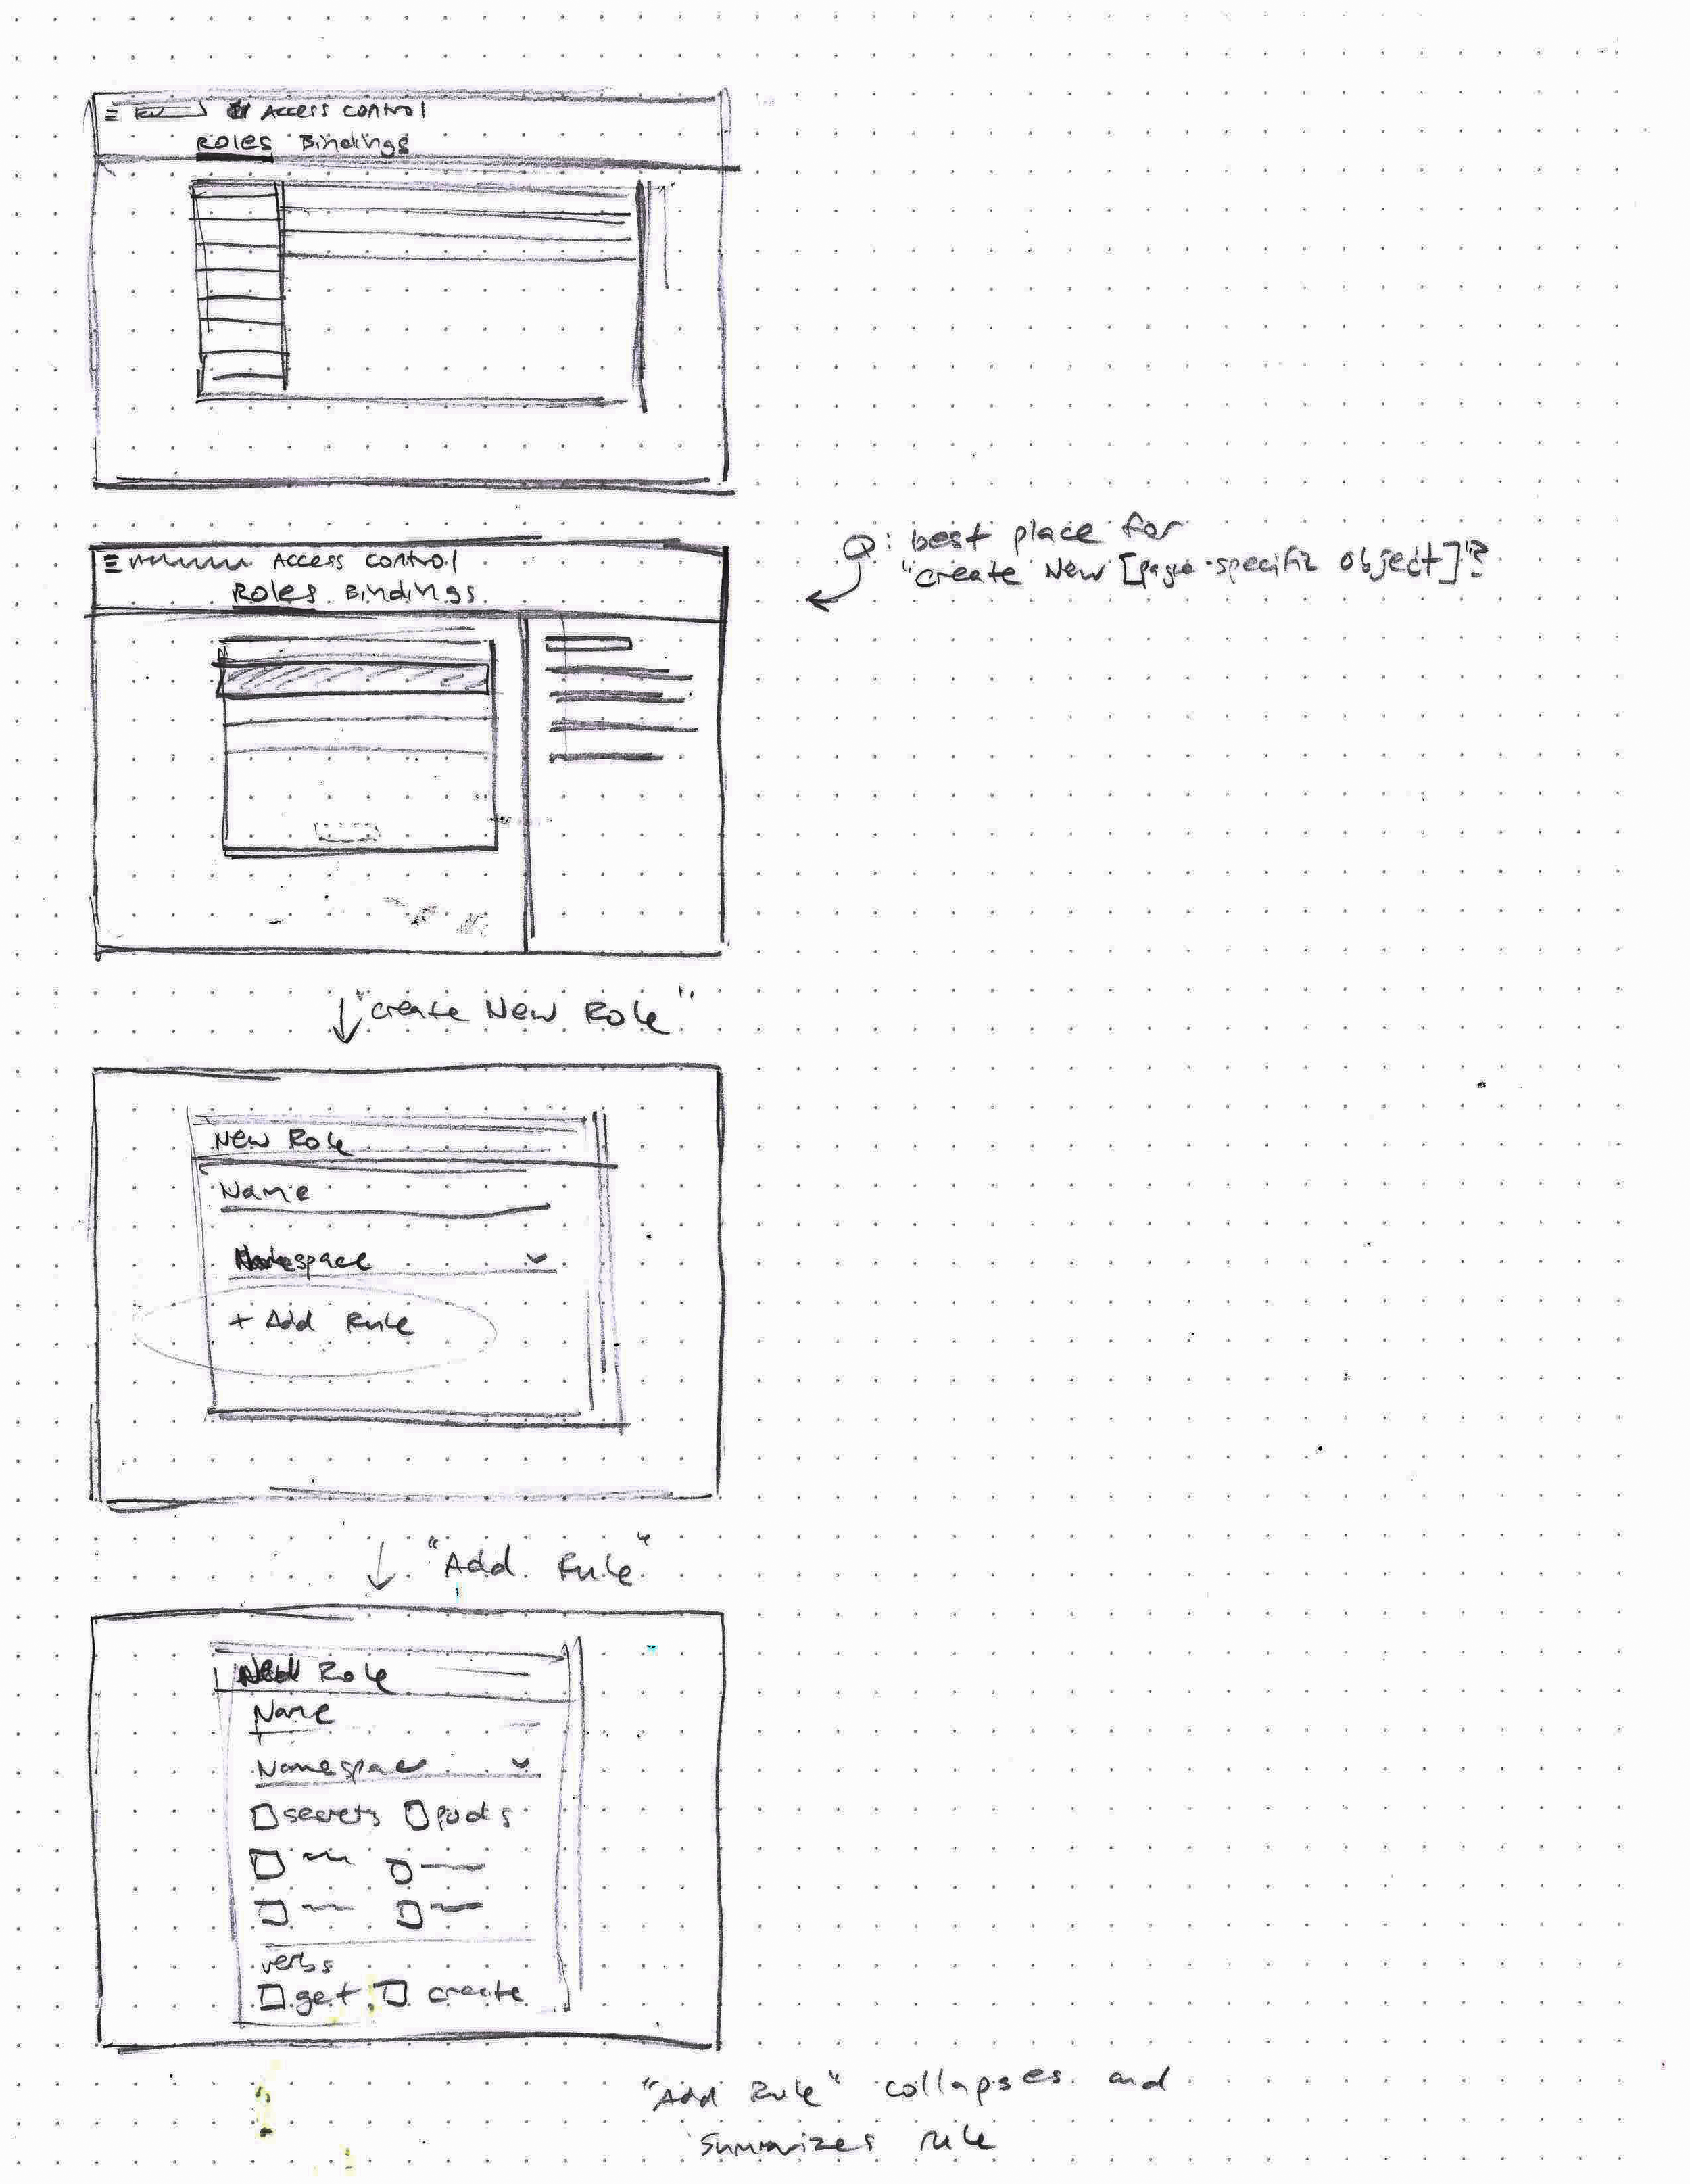 Sketches for Role Based Access Control Management.Sketches for Role Based Access Control Management.